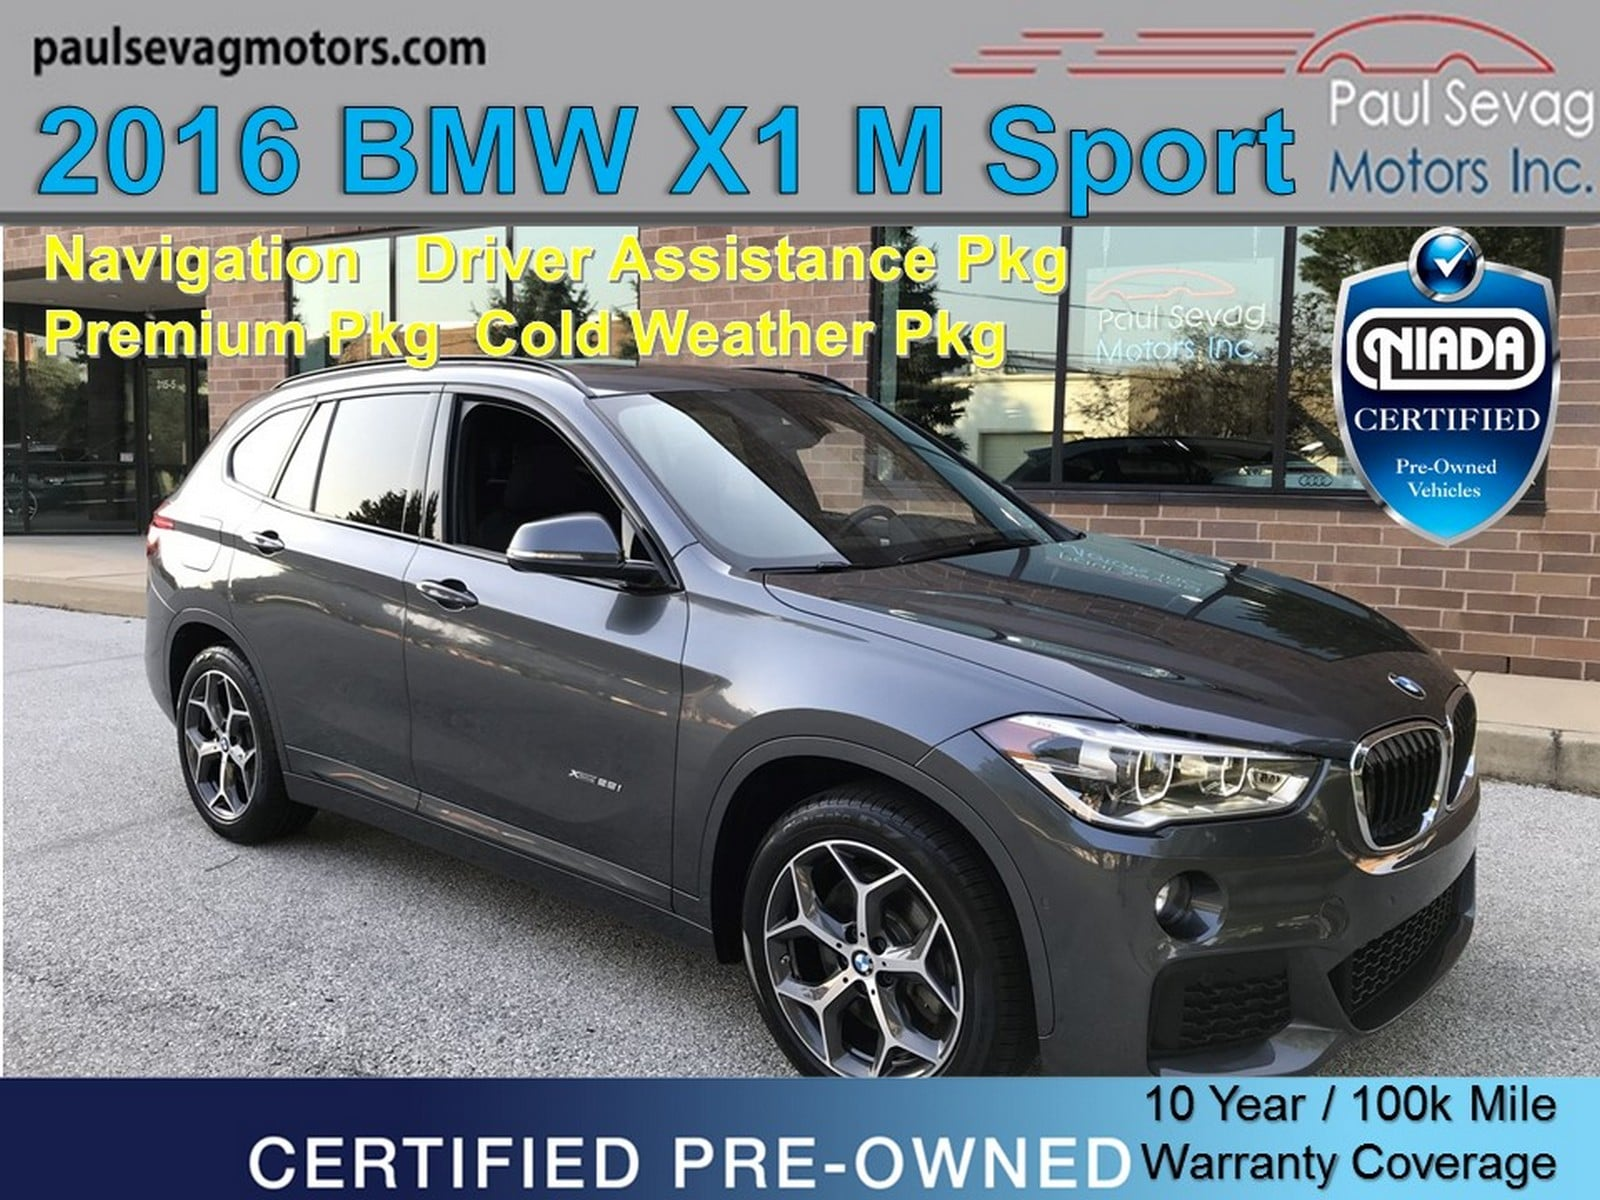 2016 BMW X1 xDrive28i M Sport Pkg Driver Assistance/Cold Weather/Premium